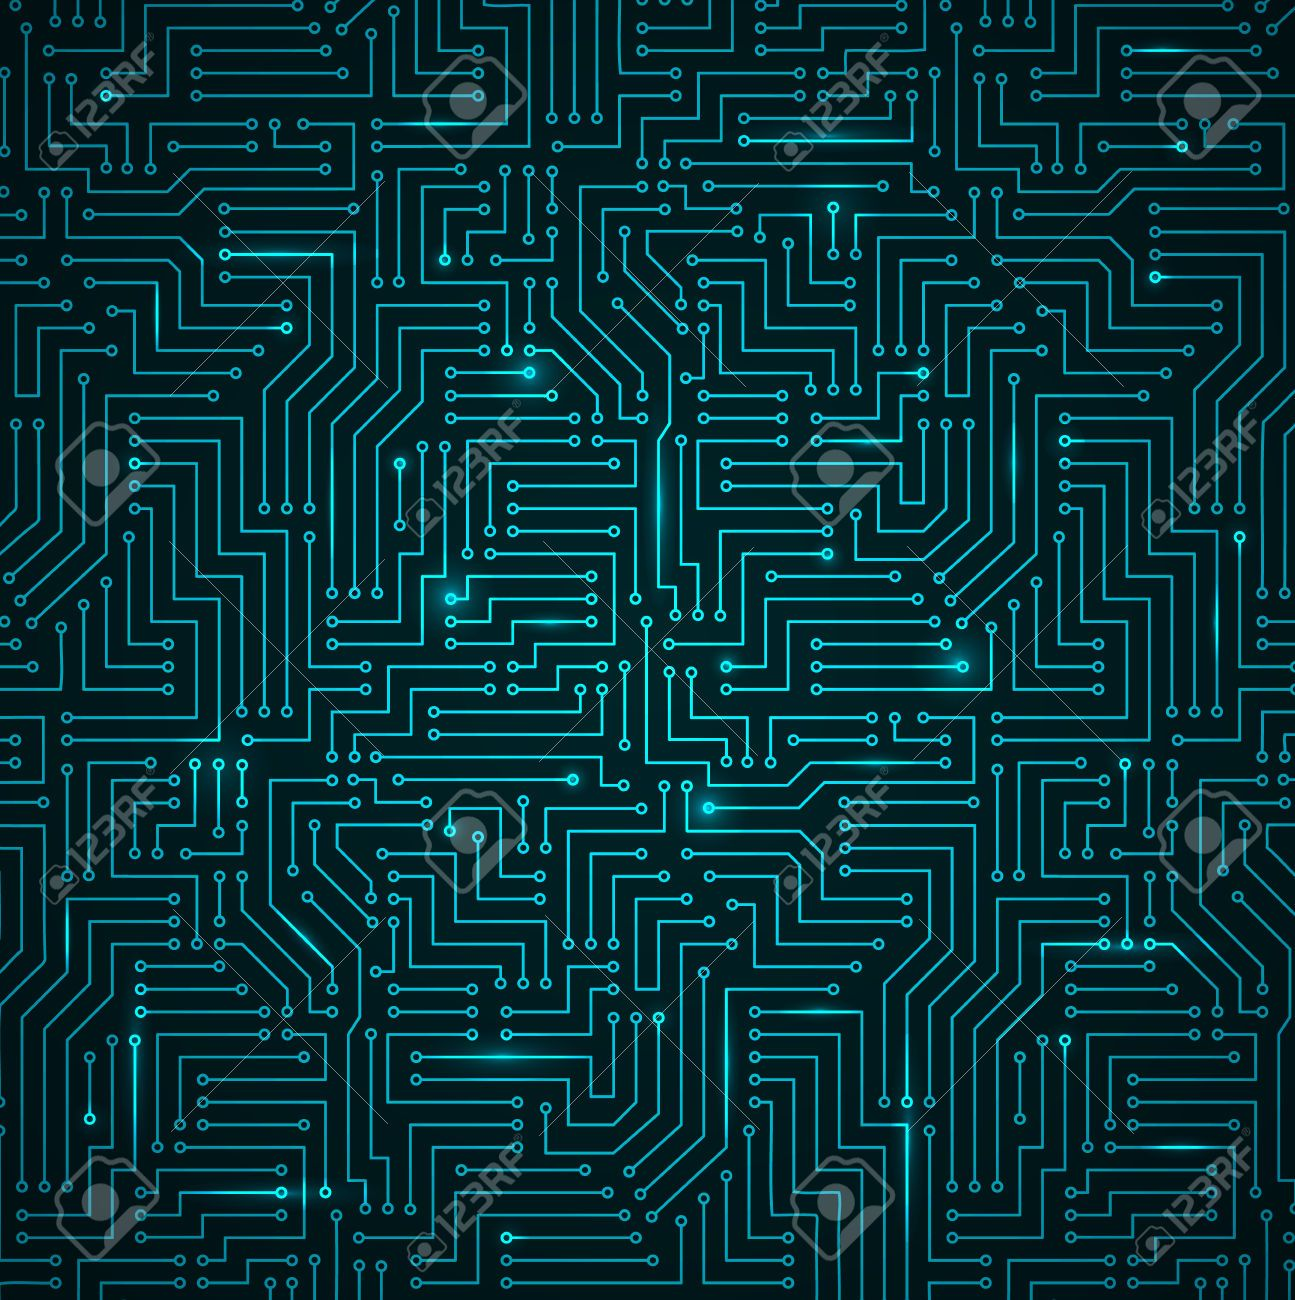 Tech Texture Seamless Google Search Pattern Pinterest Circuit Board Graphic Greeting Card For Sale By Setsiri Design Textures Patterns Print Technology